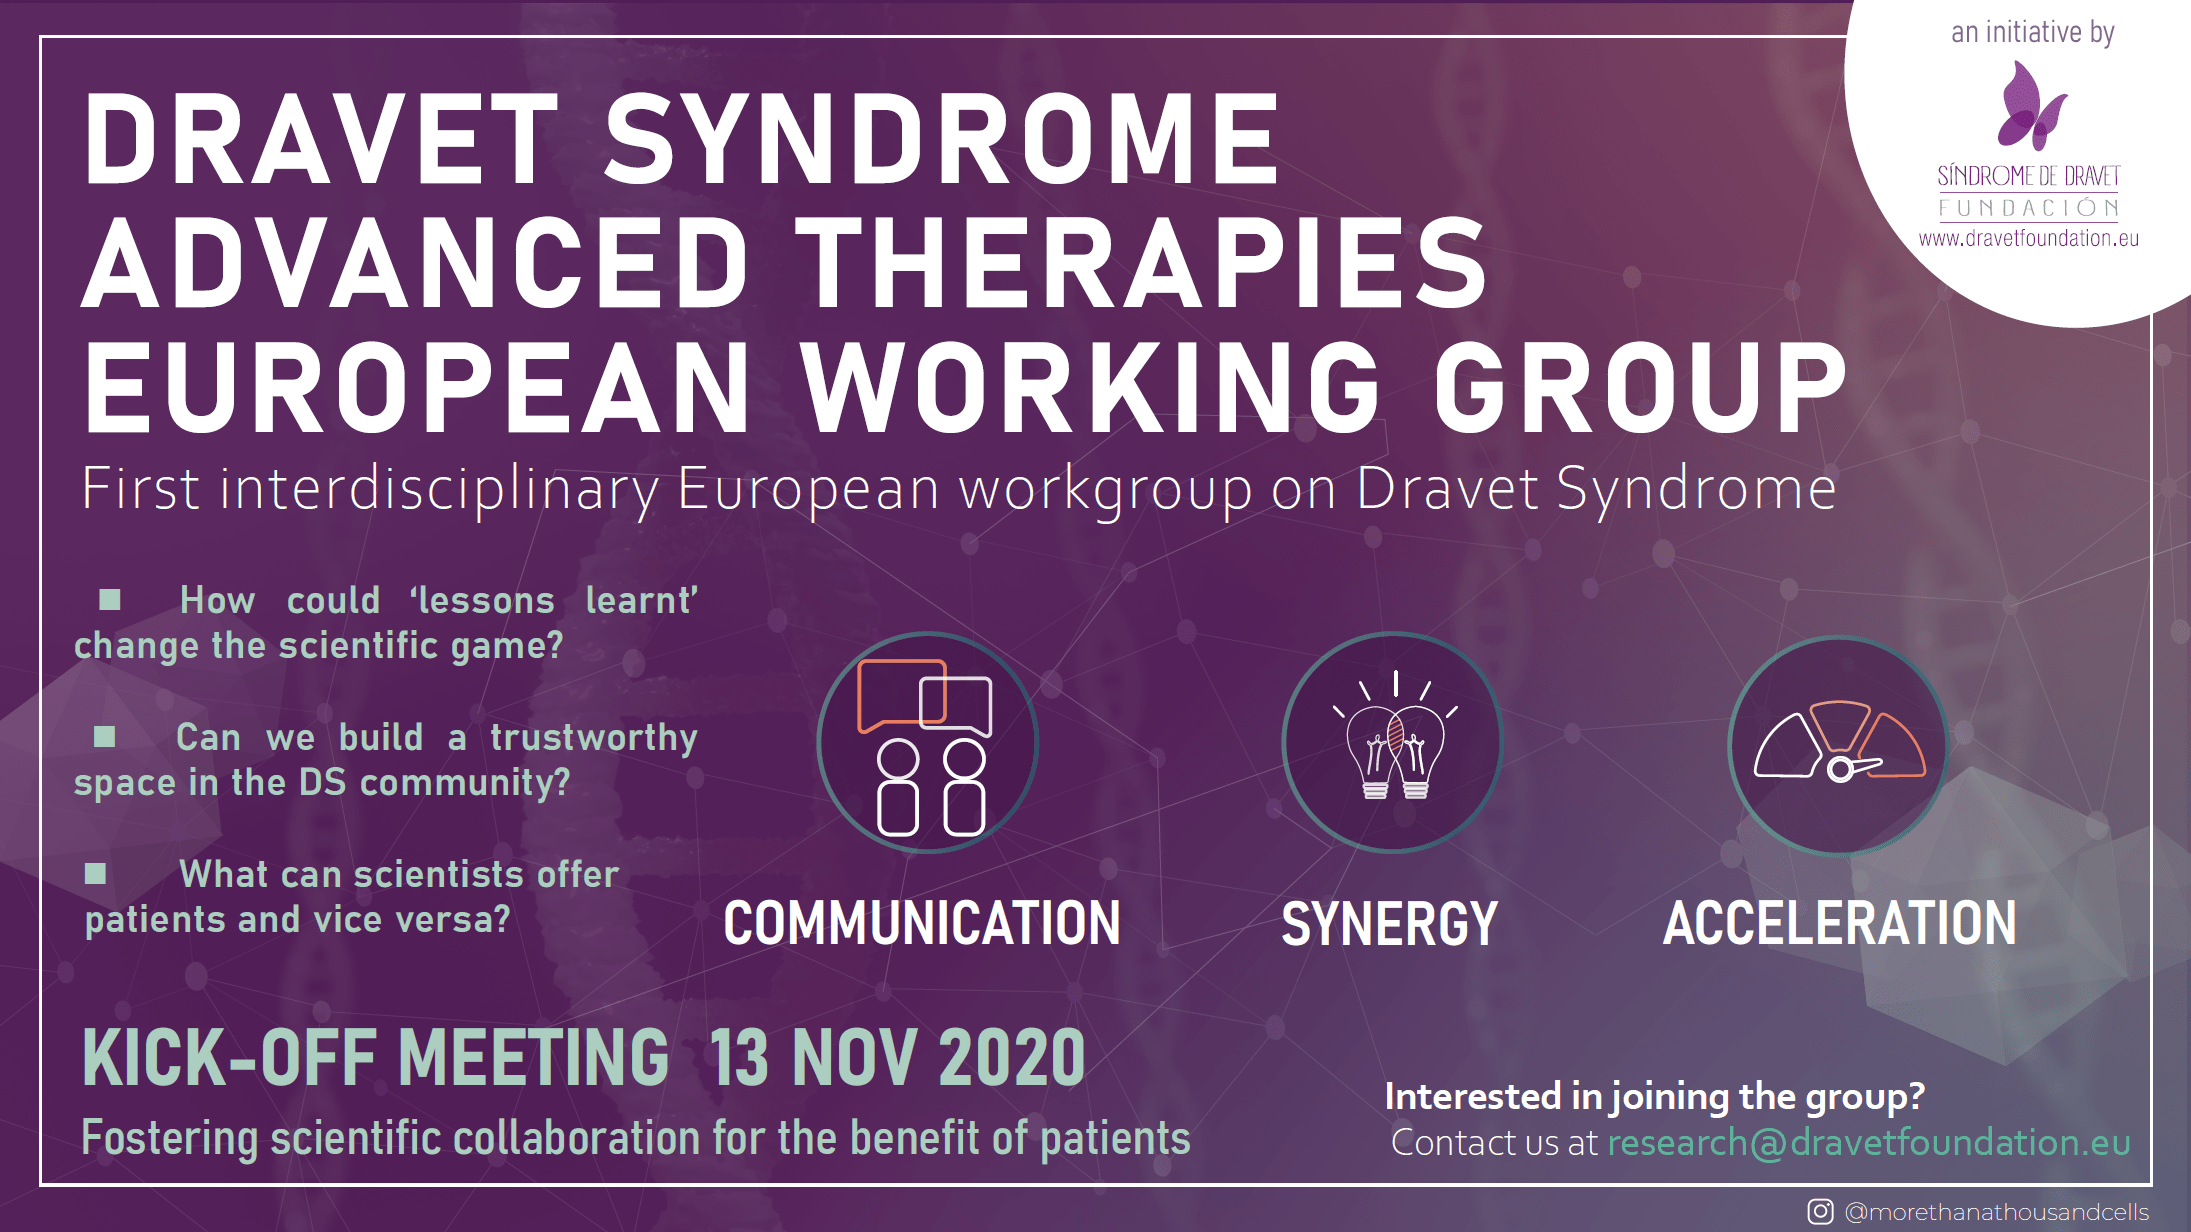 Dravet Syndrome Advanced Therapies European Working Group